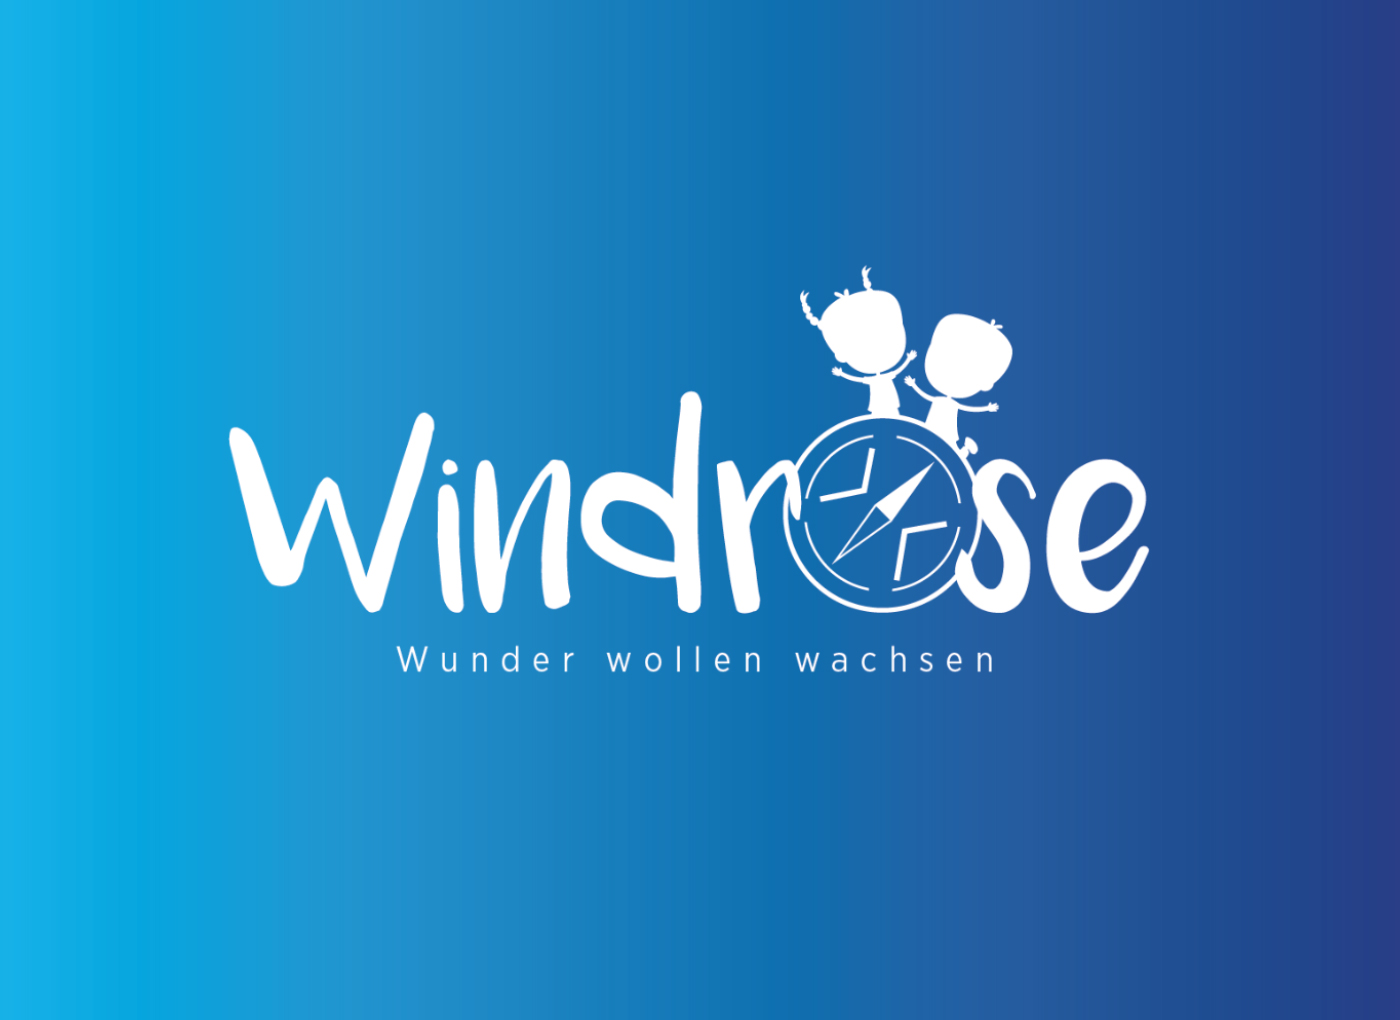 Windrose Referenz-Bild-05